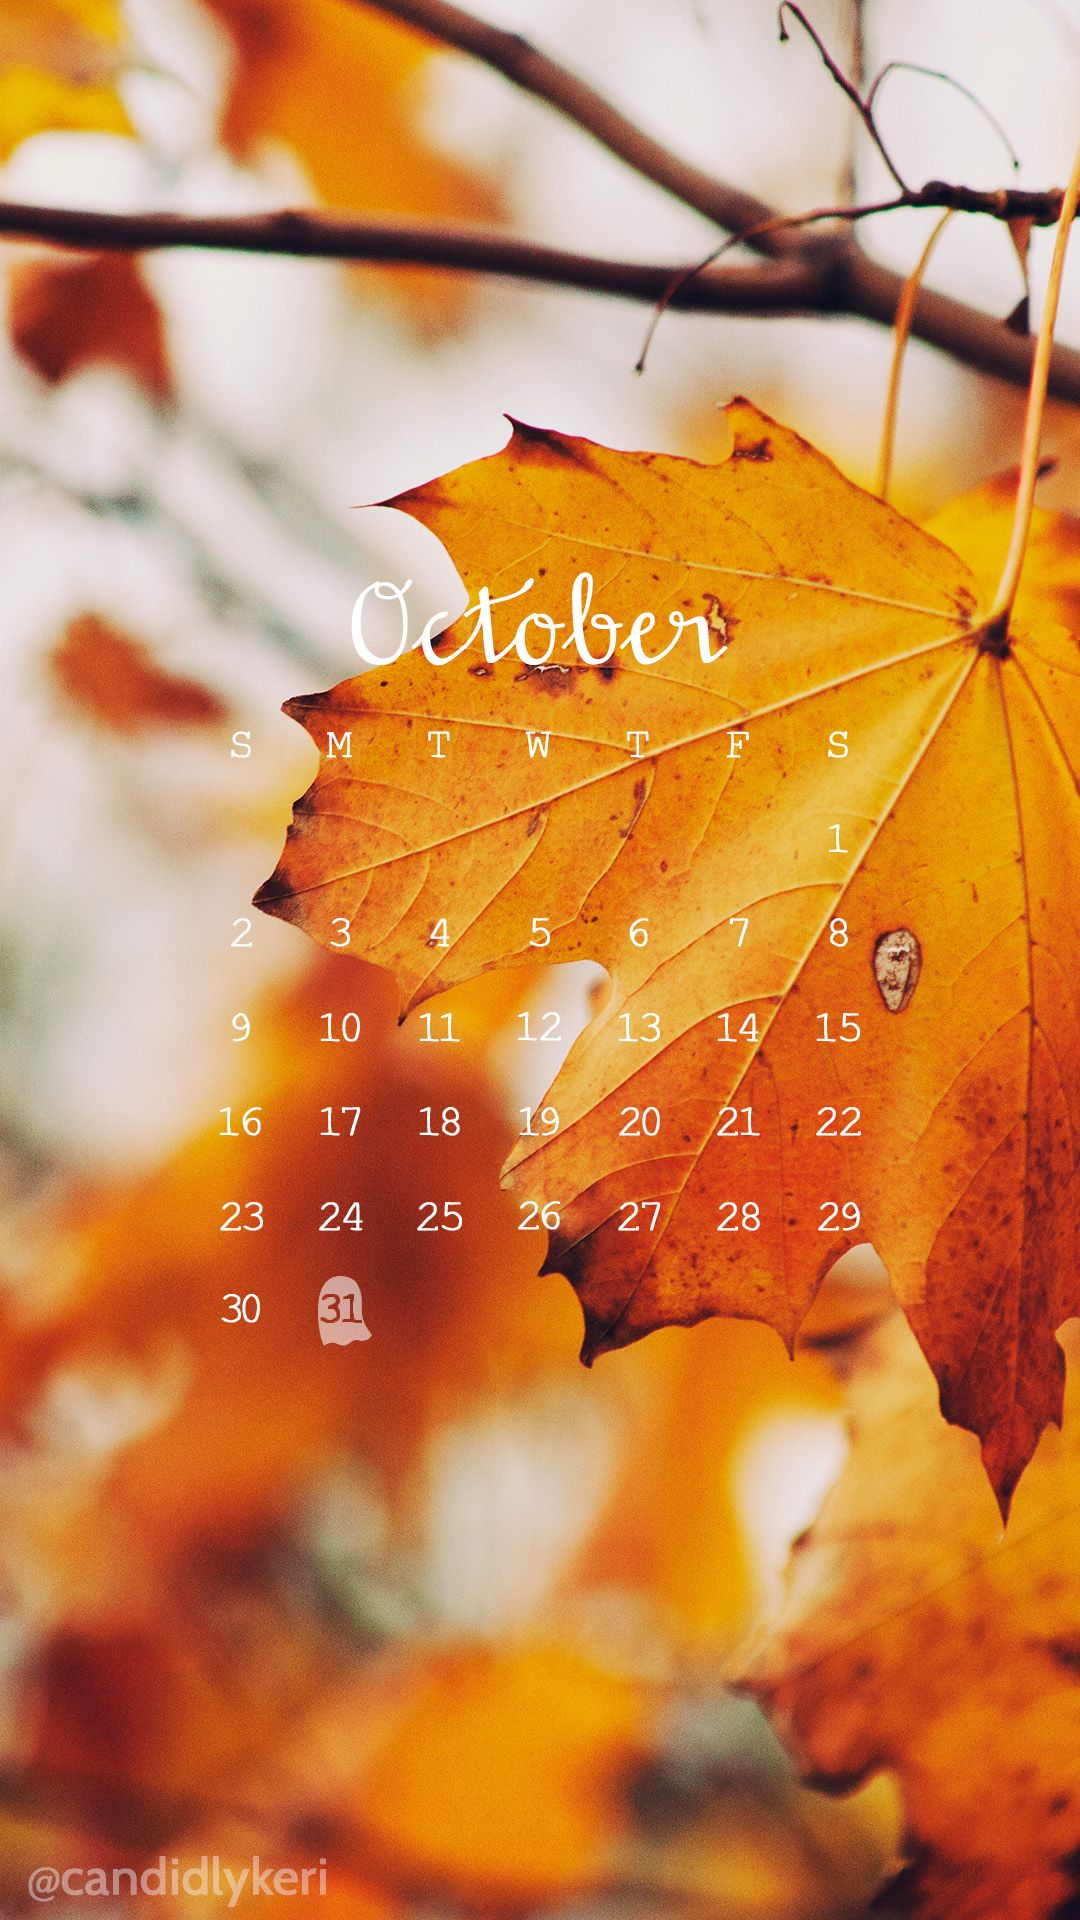 Fall Leaves Photo October Calendar 2016 Wallpaper You Can Download For Free On The Blog For Any Device M October Wallpaper Fall Wallpaper Cute Fall Wallpaper